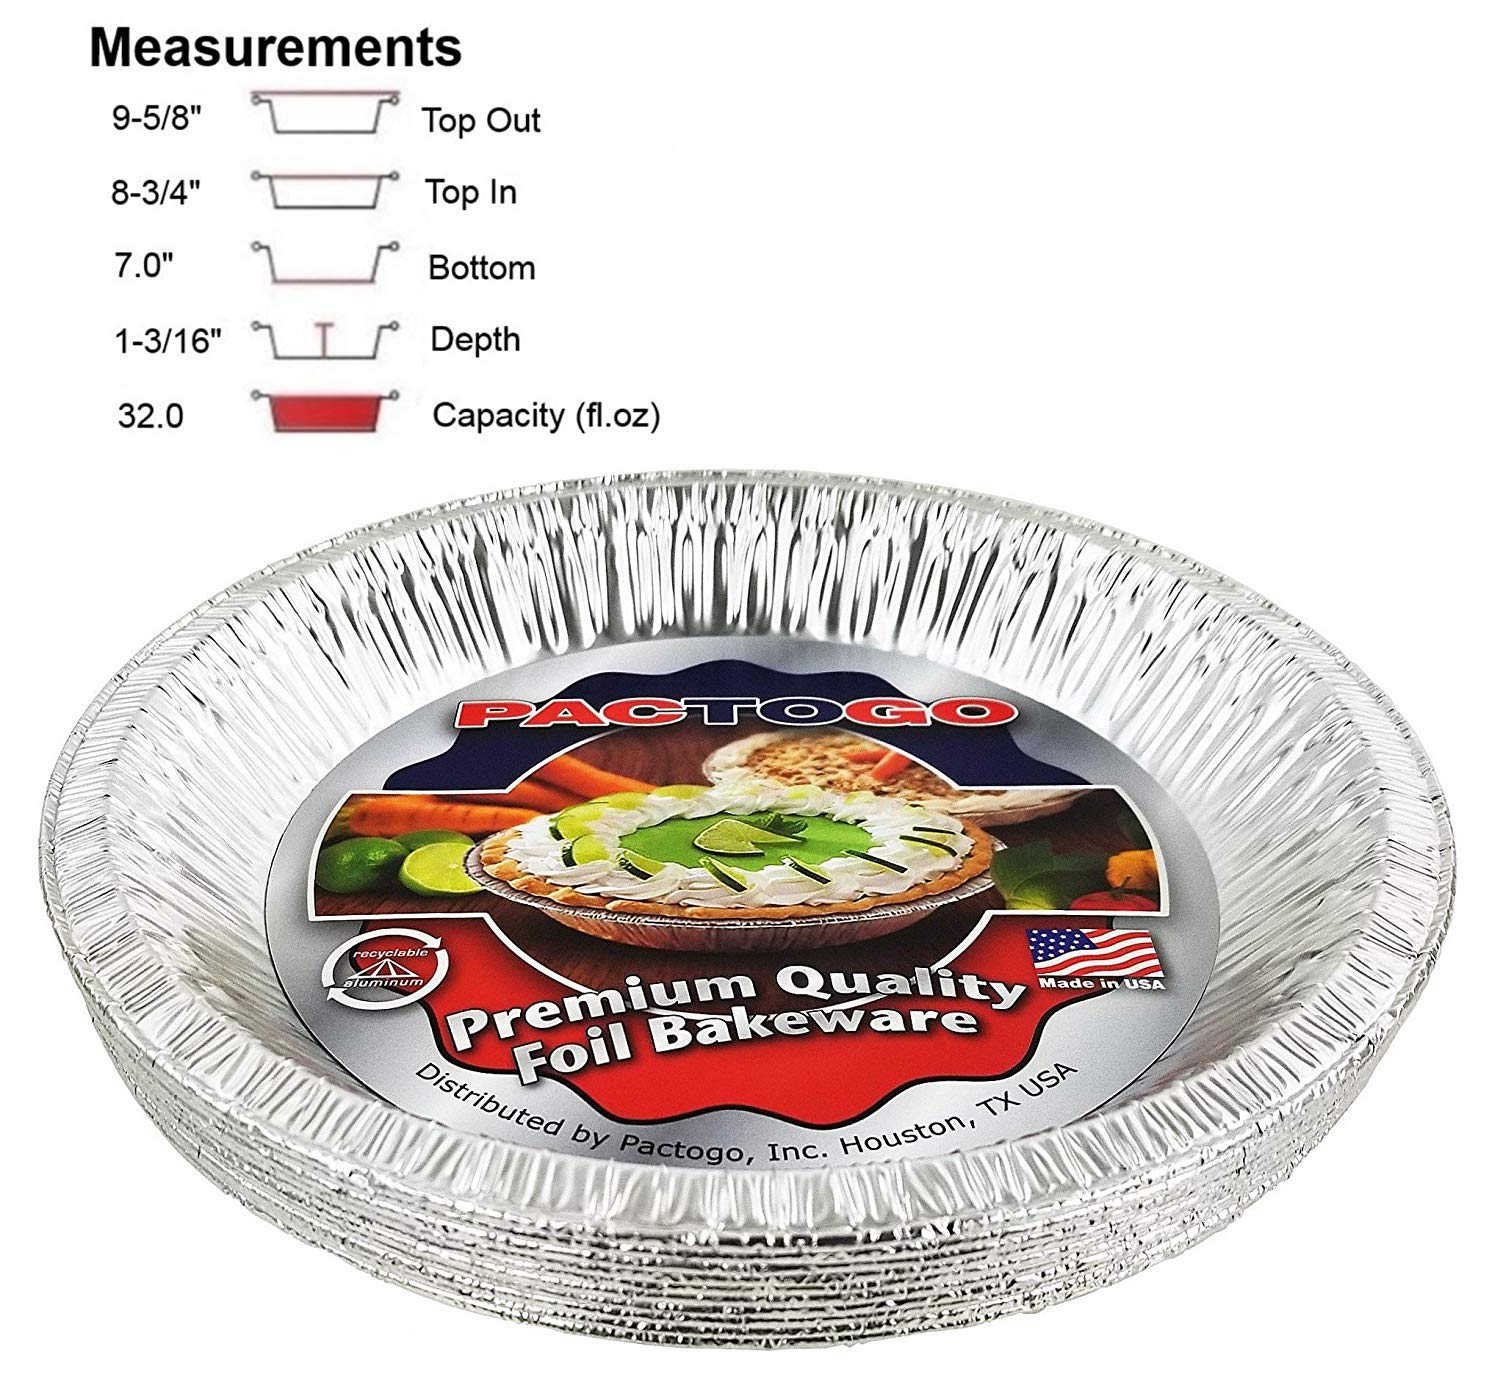 Pactogo Aluminum Foil Pie Pan (Actual Top-Out 9-5/8 Inches - Top-In 8-3/4 Inches - Vertical Depth 1-3/16 Inches) - Disposable Baking Tin Plates (Pack of 100)